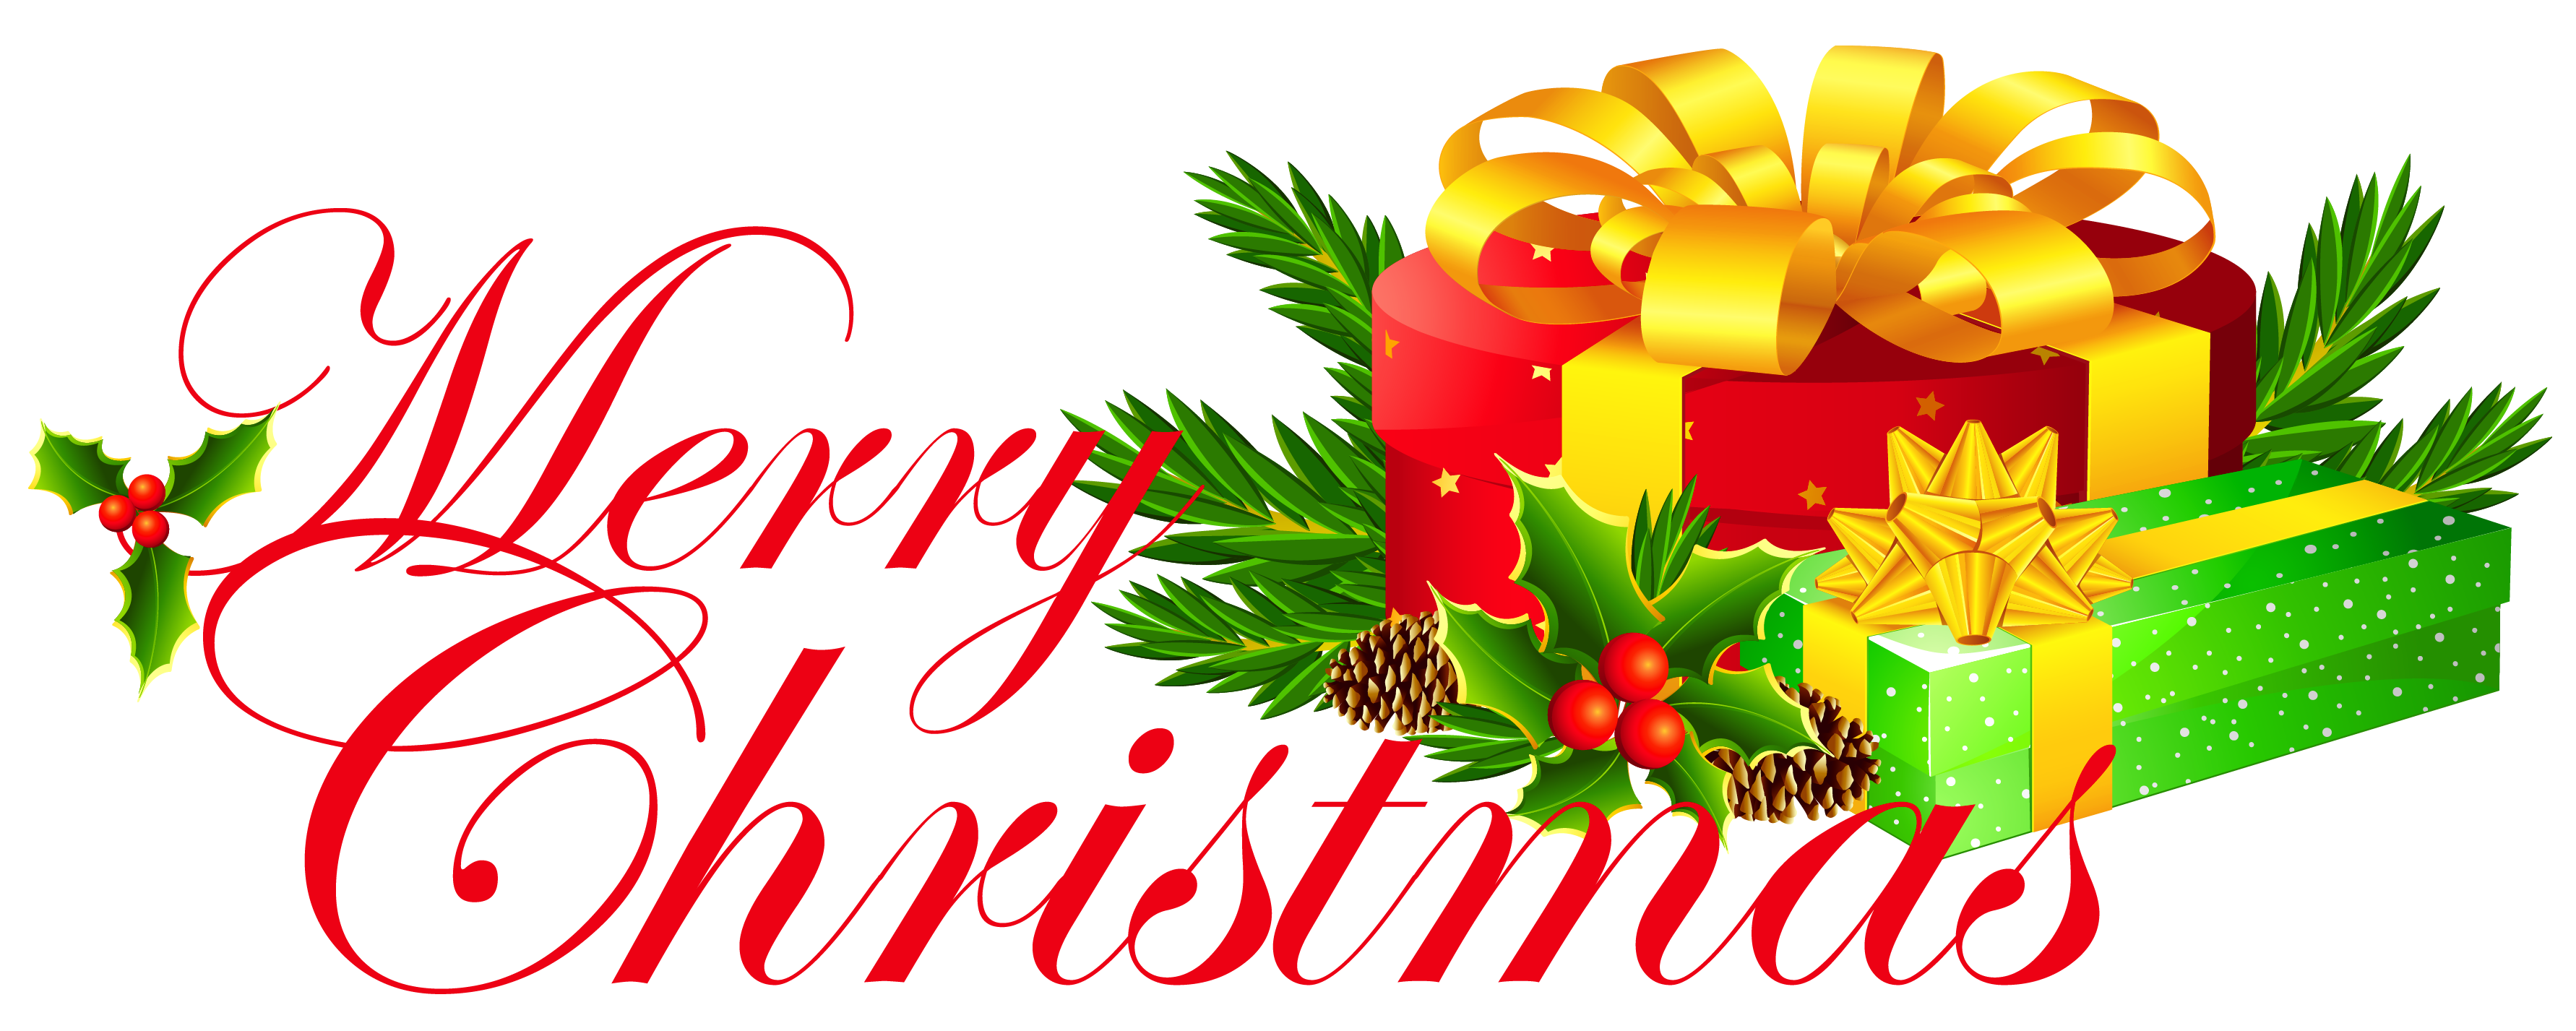 3565x1427 Transparent Merry Christmas With Presents Clipart 0 Image